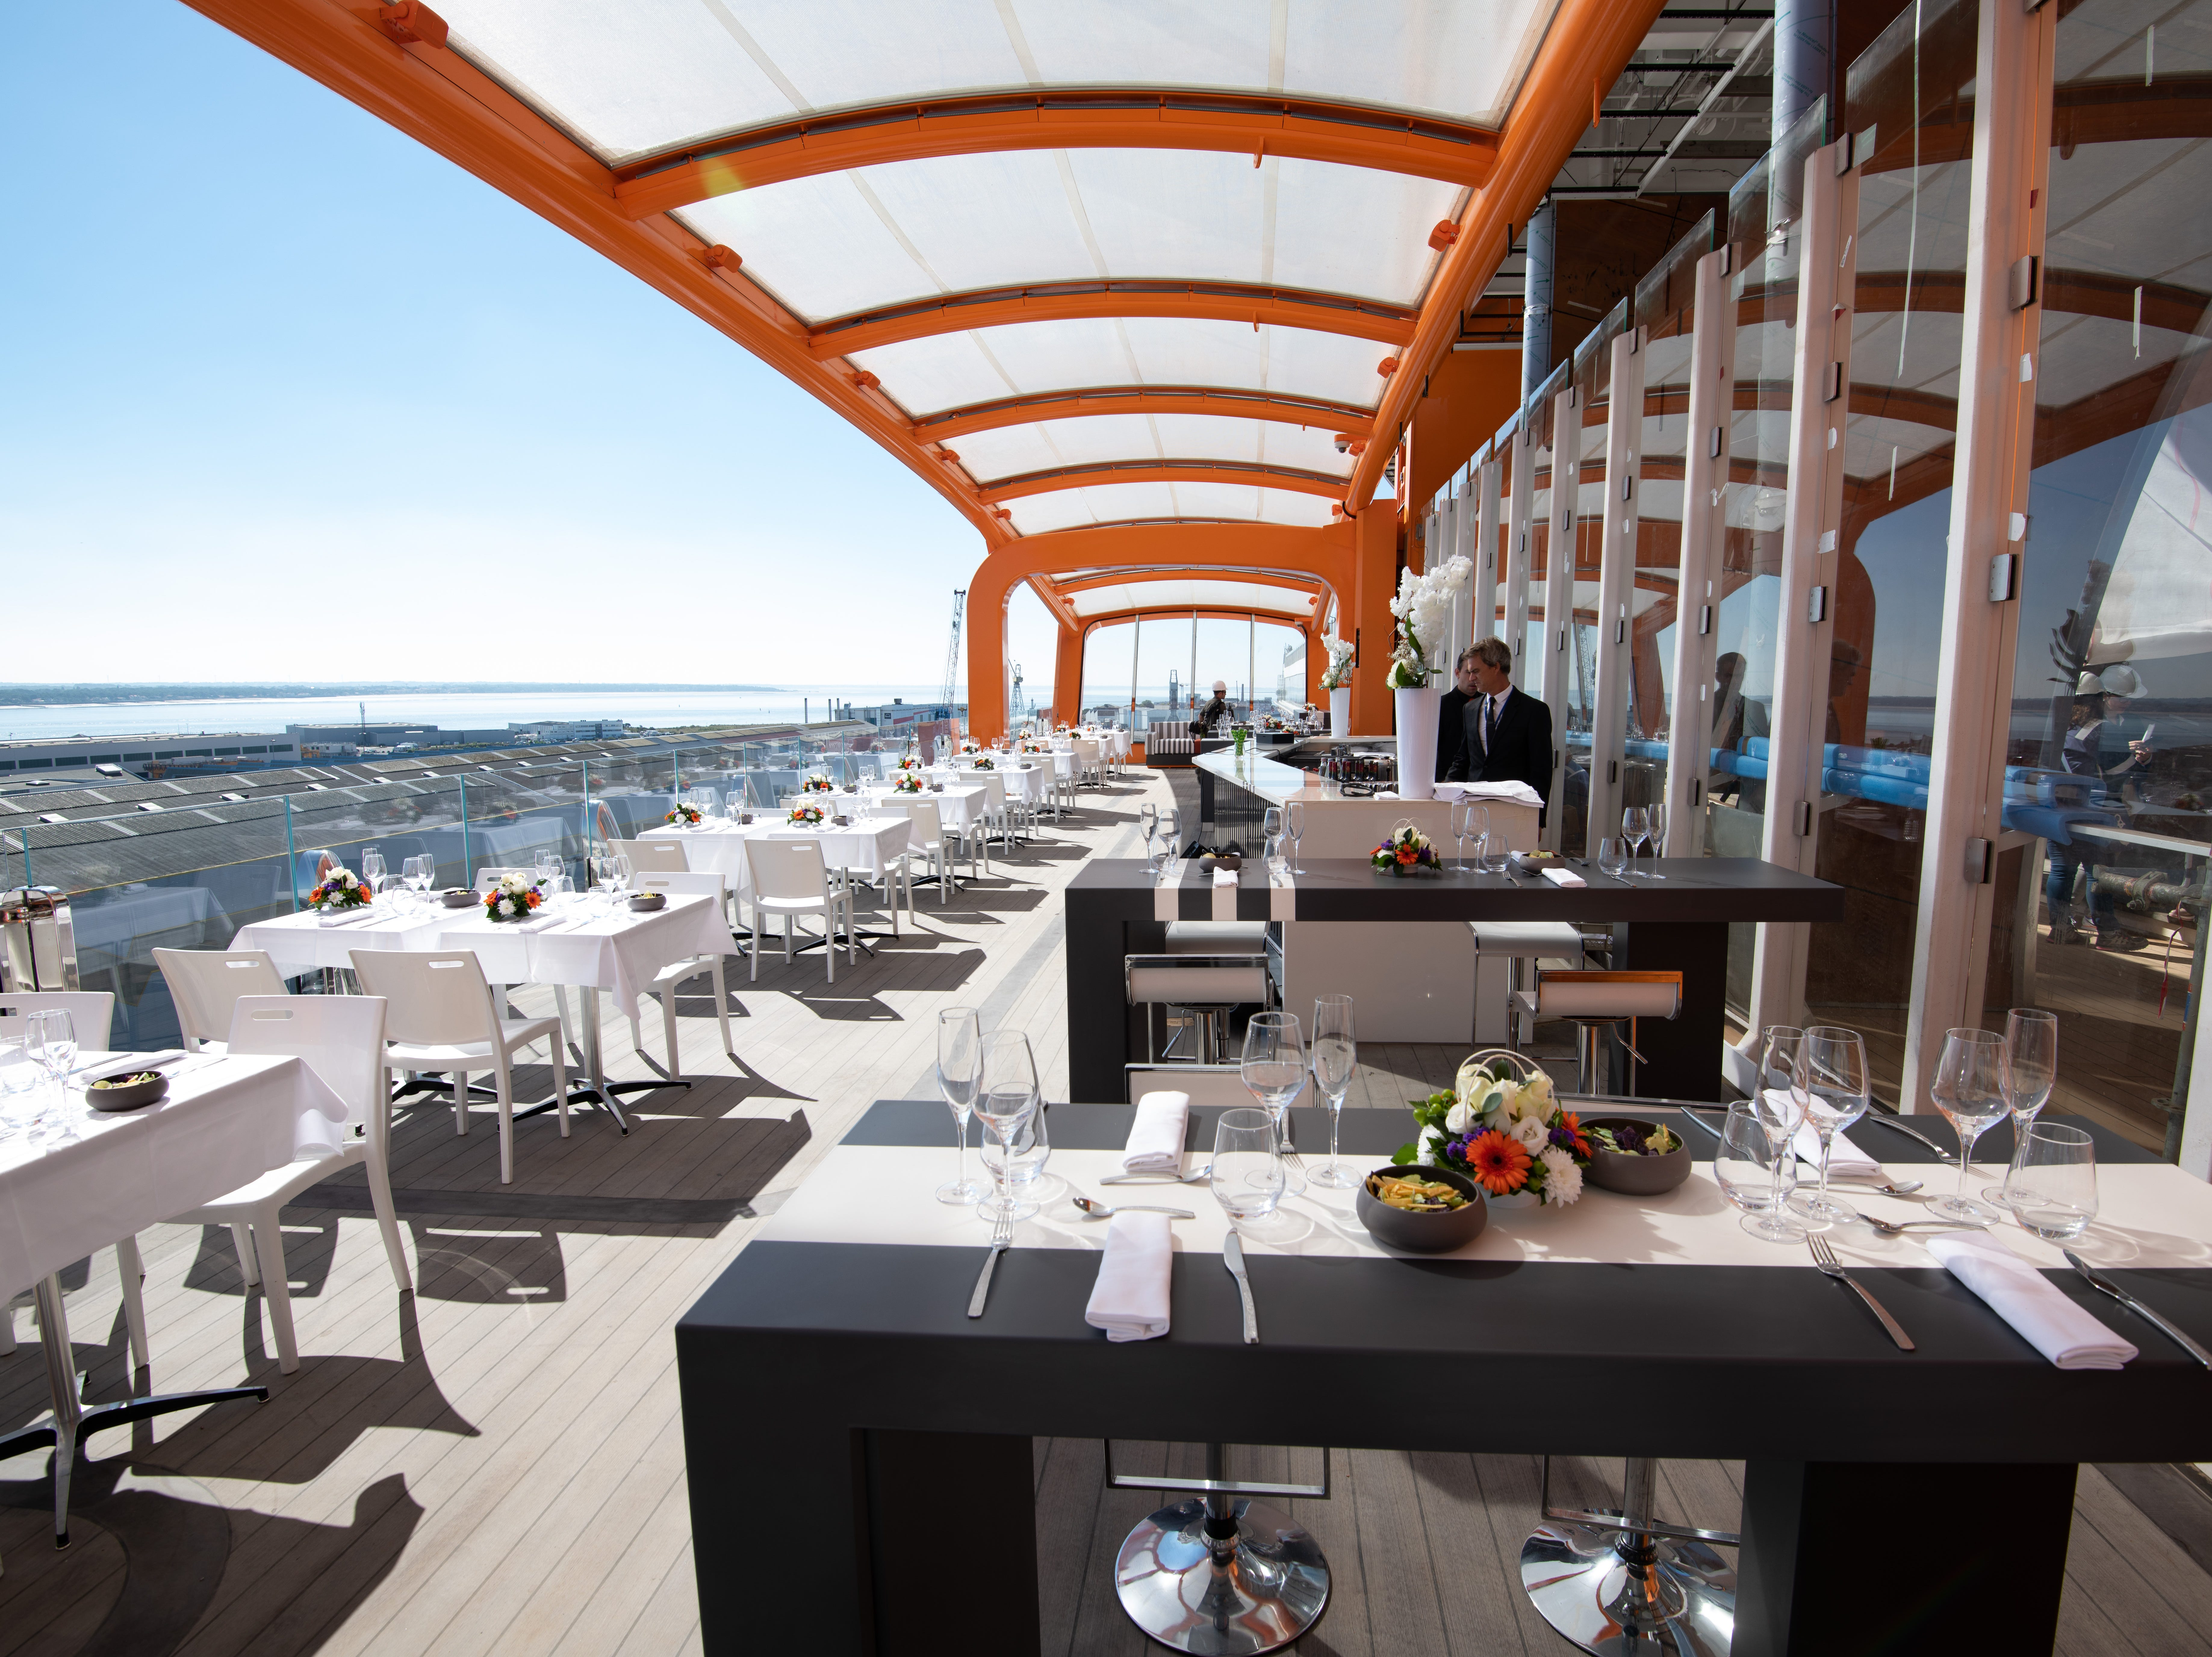 The Magic Carpet platform on Celebrity Edge also can serve as an extension of the ship's main pool area when placed alongside Deck 14. The platform features space that can be used for live musical performances.